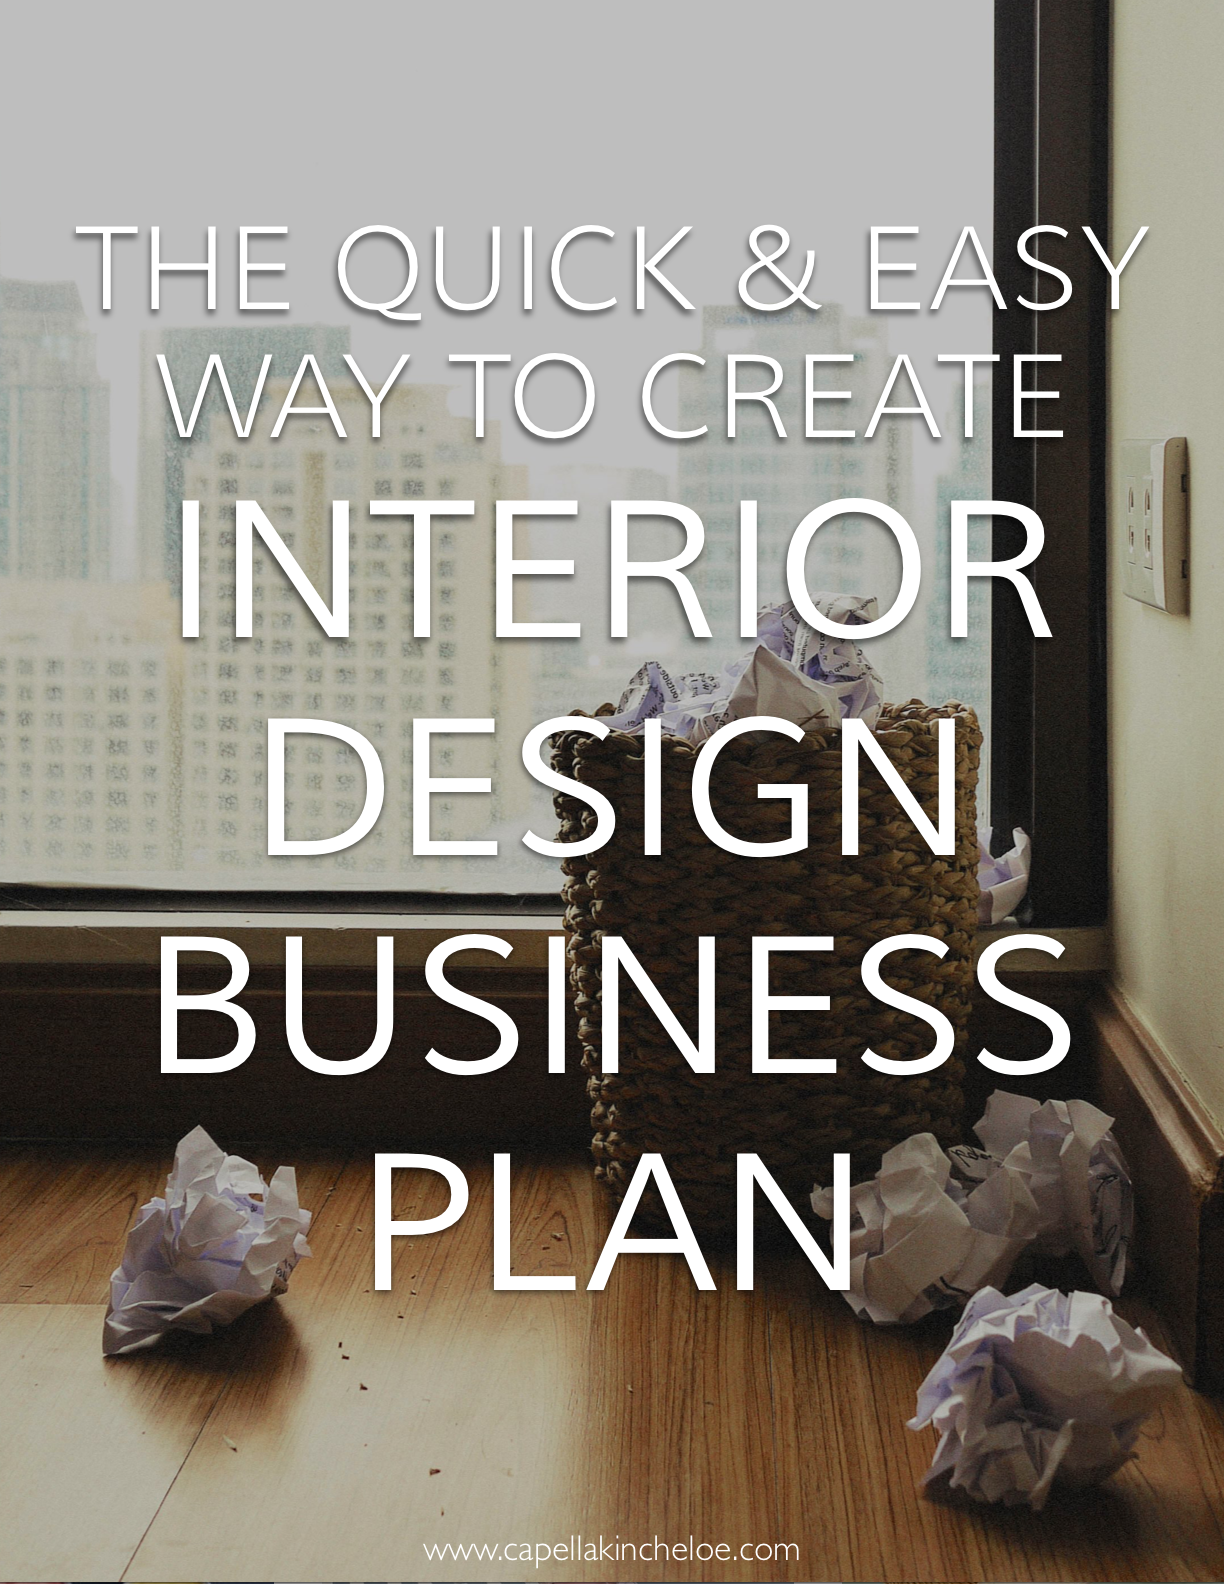 Simple Business Plans For Interior Designers